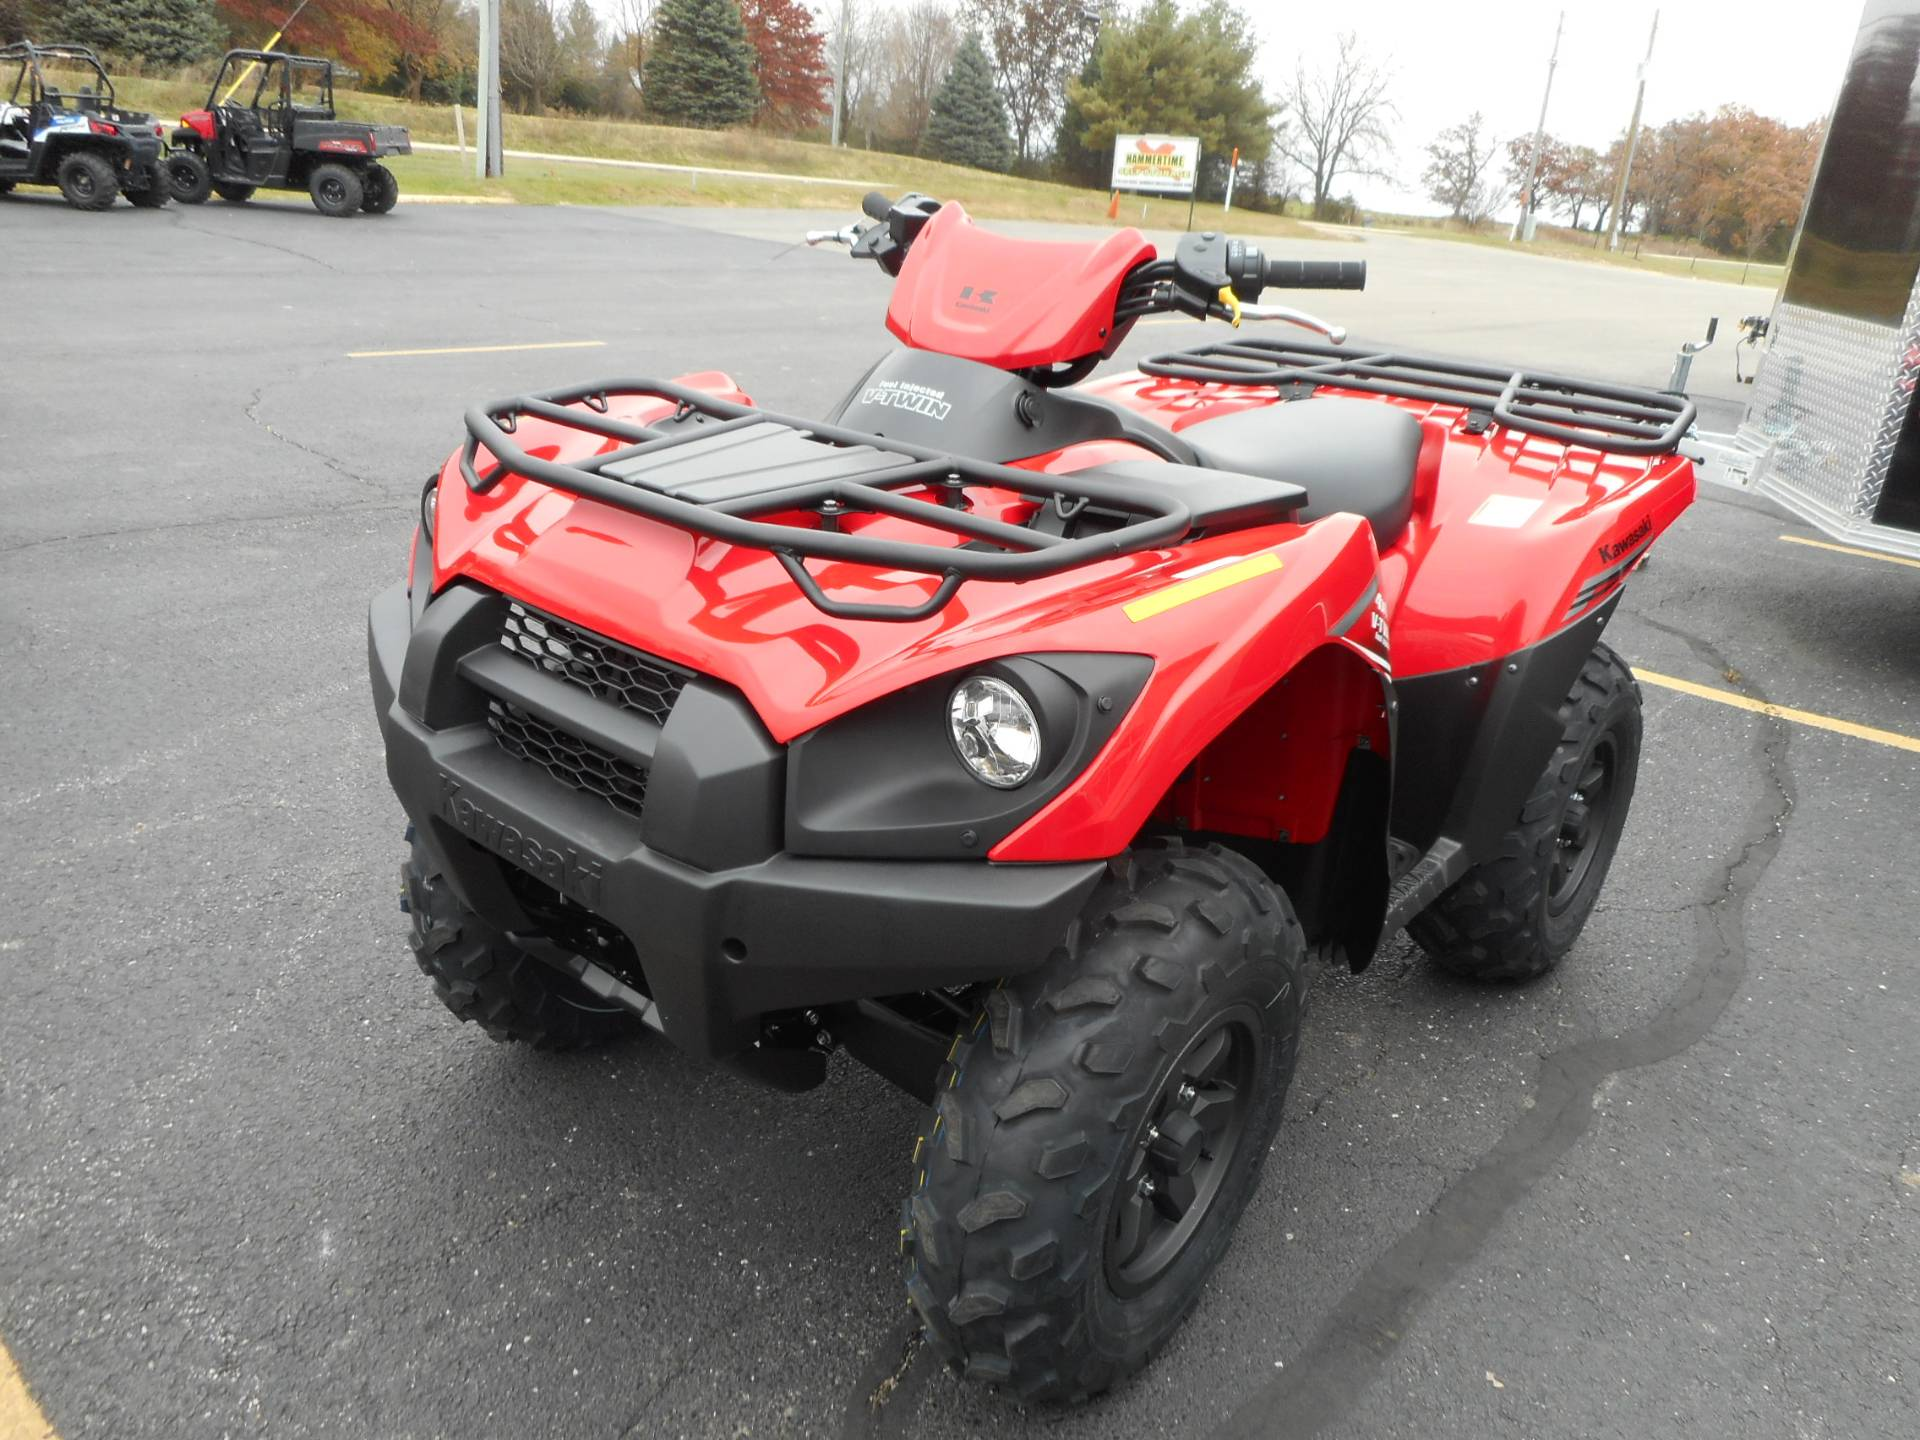 2020 Kawasaki Brute Force 750 4x4i in Belvidere, Illinois - Photo 7